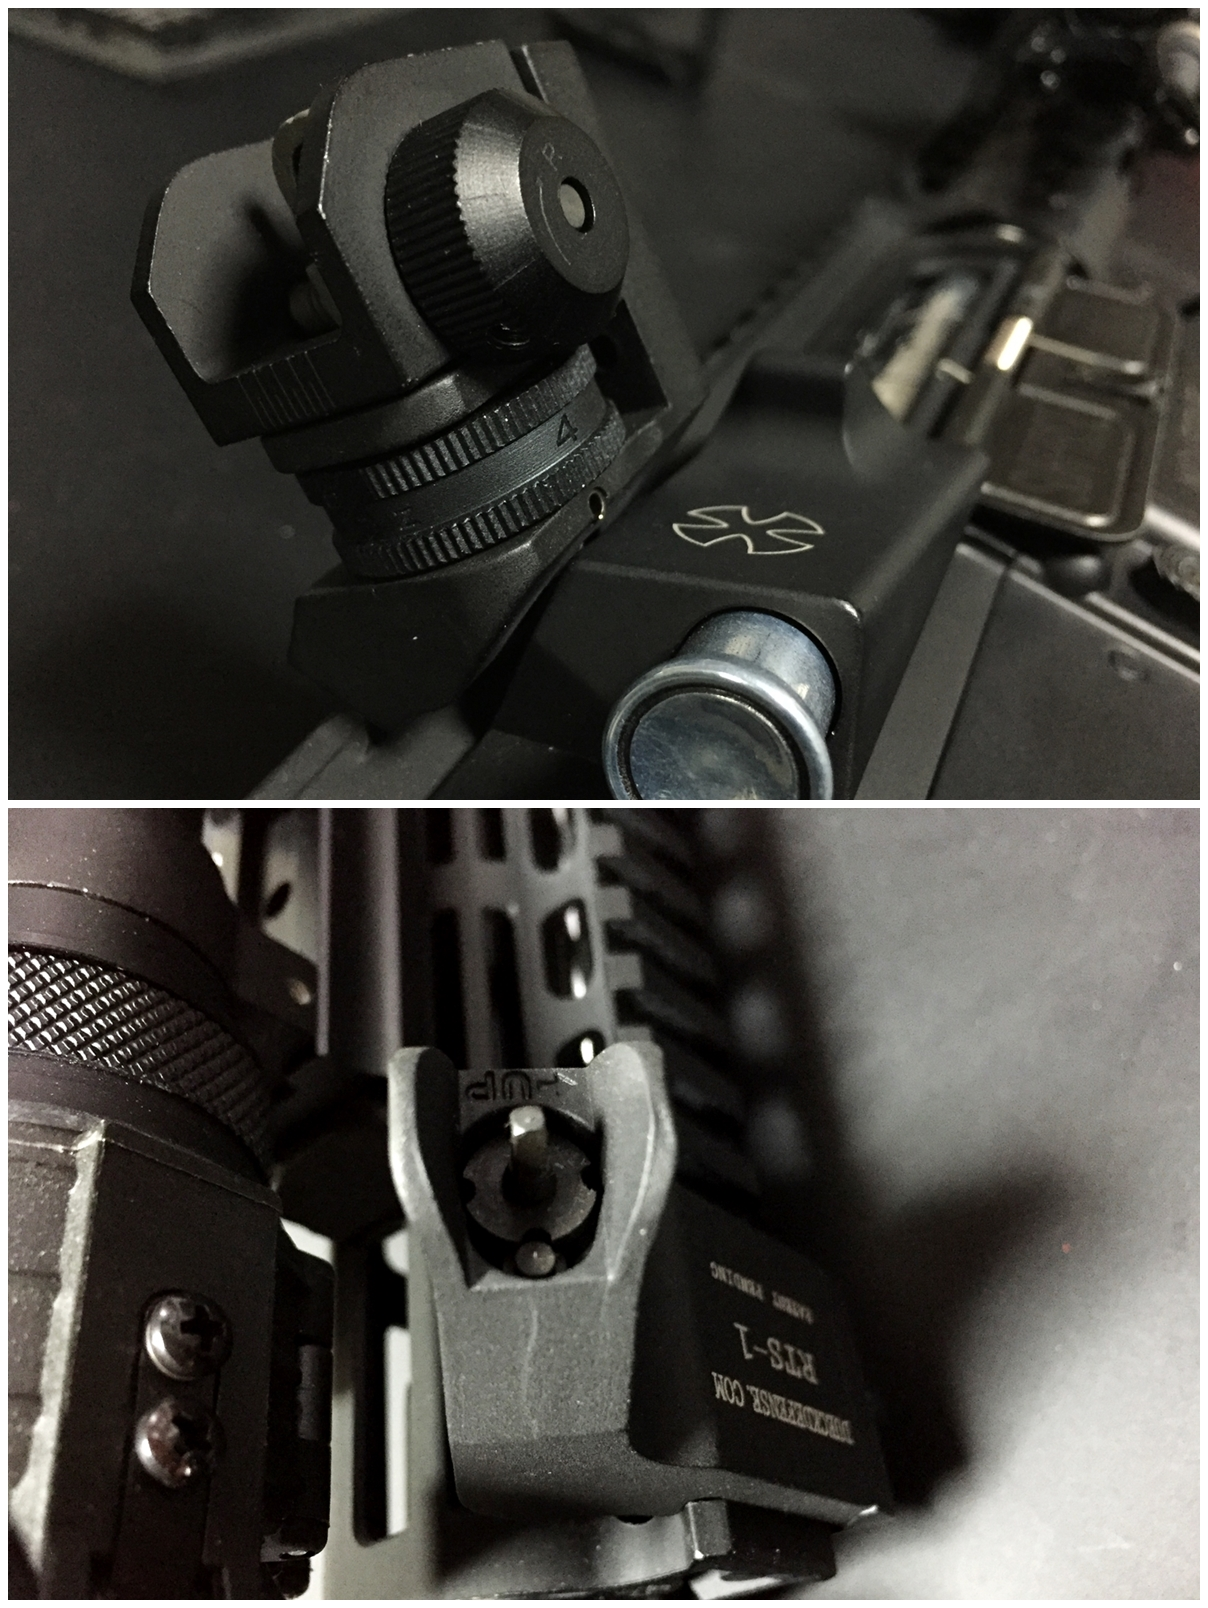 3 RAPID TRANSITION SIGHT FRONT & REAR DUECK DEFENSE TYPE ラピッドトランジションサイト オフセットサイト カスタム 取付 実物 レプリカ 比較